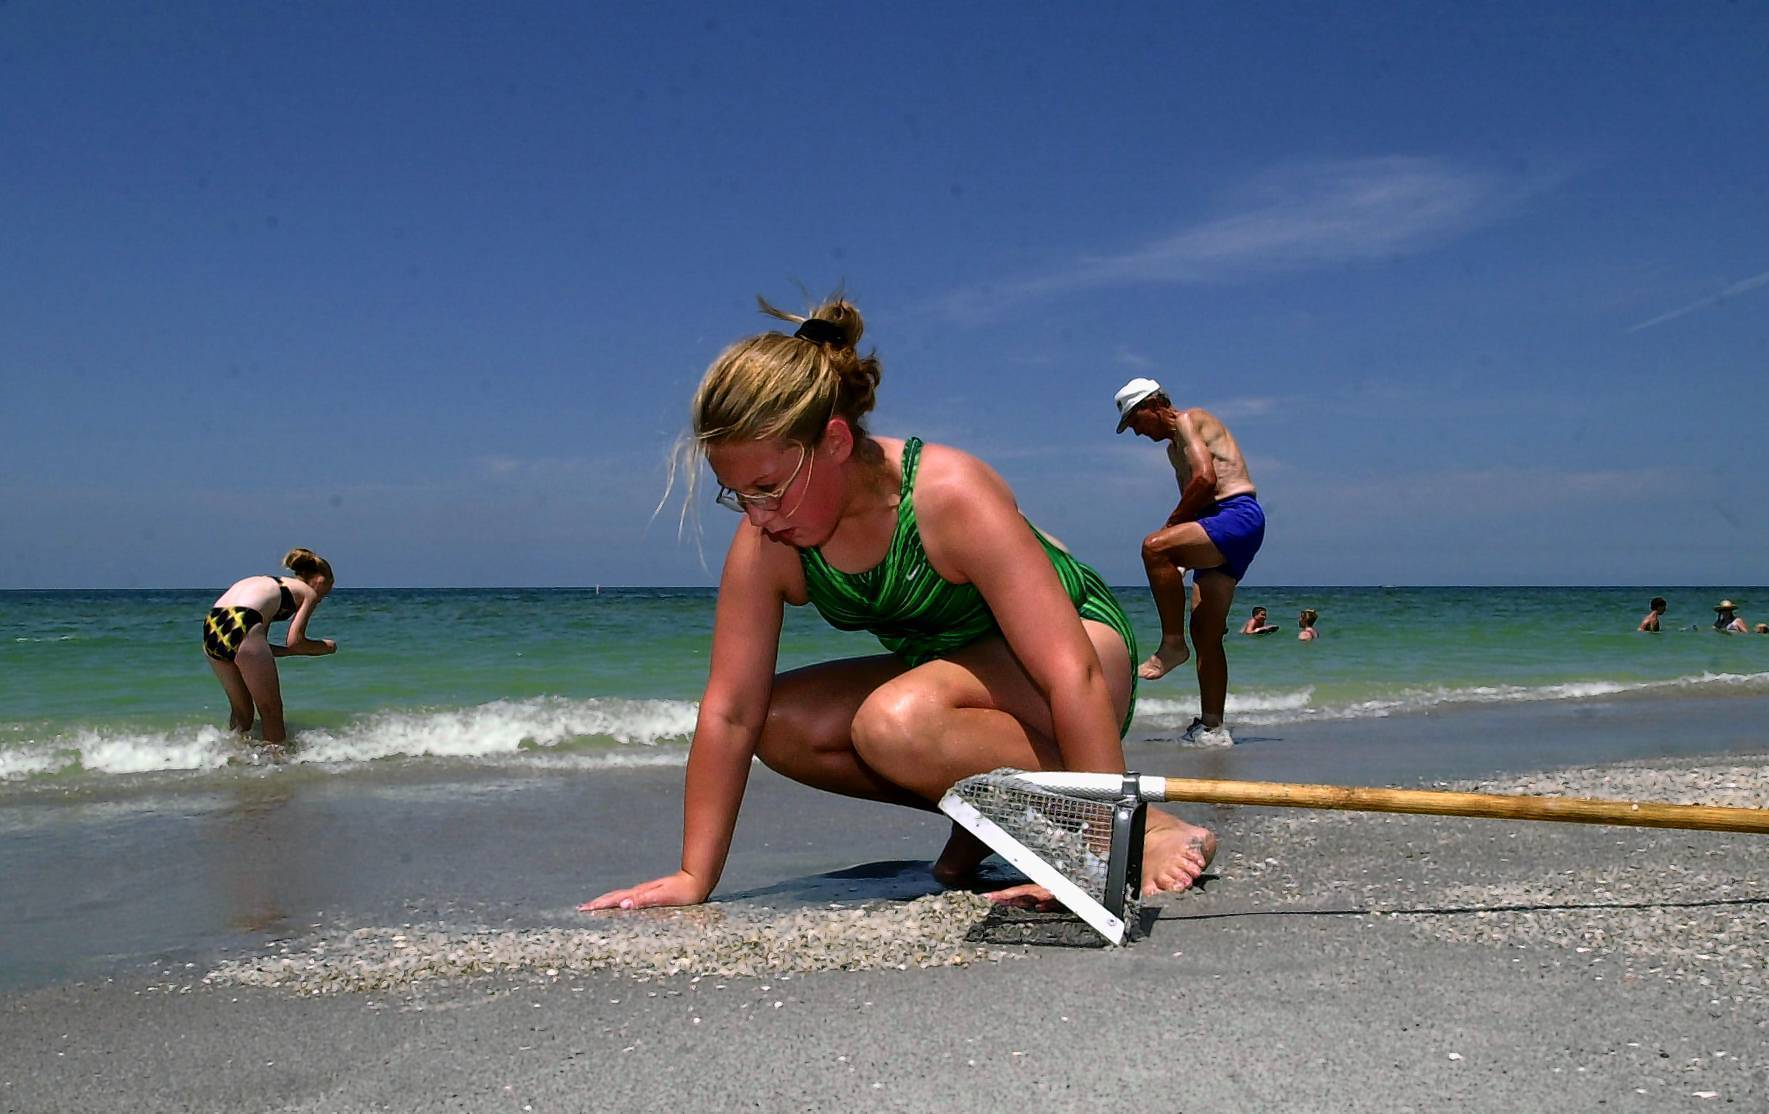 Travel to Venice, Florida: 5 things to discover – Orlando Sentinel